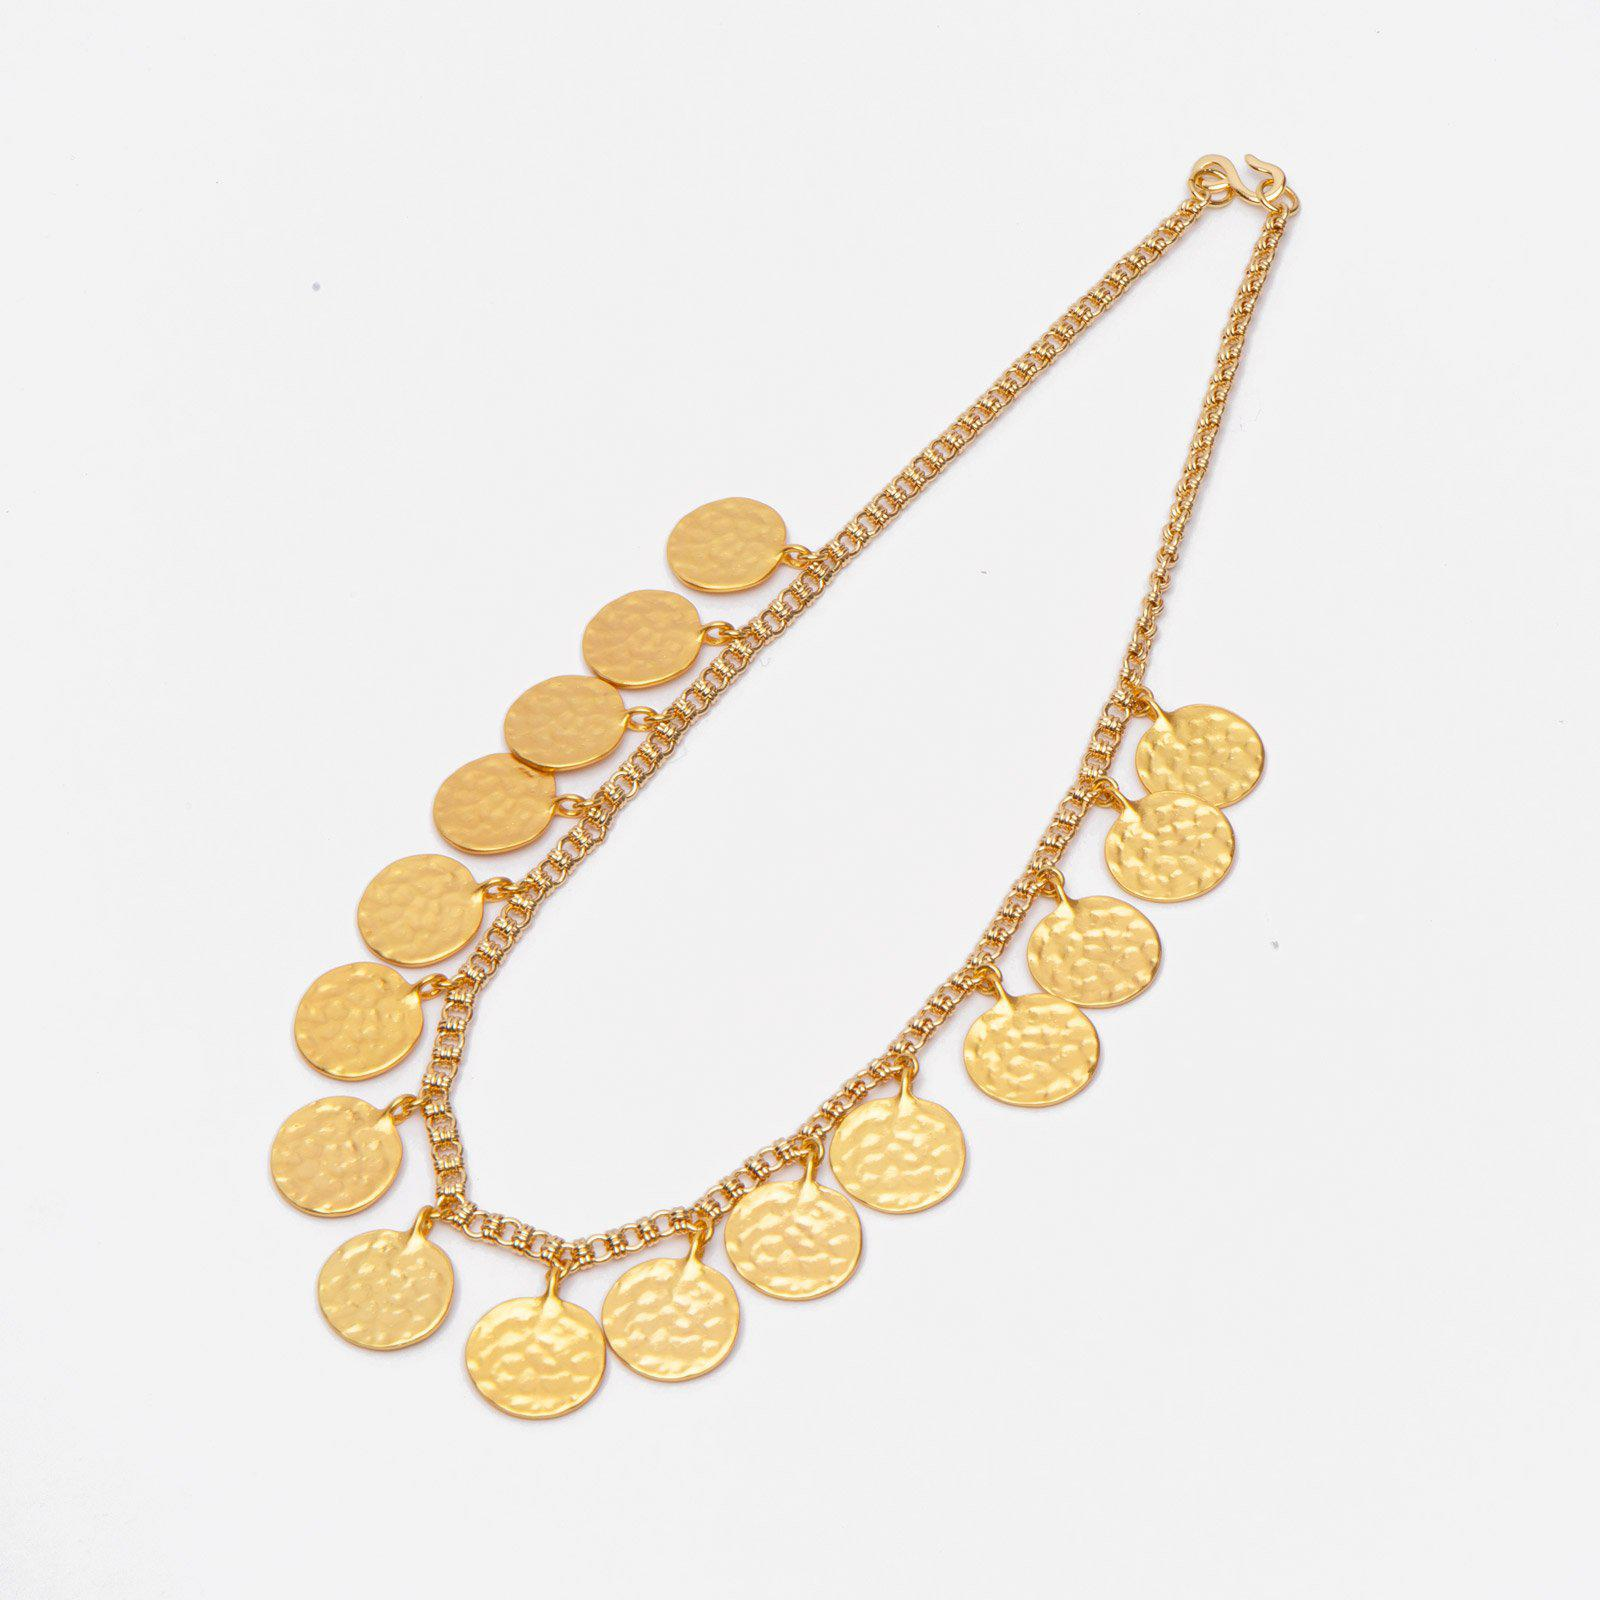 Gold Shilling Necklace